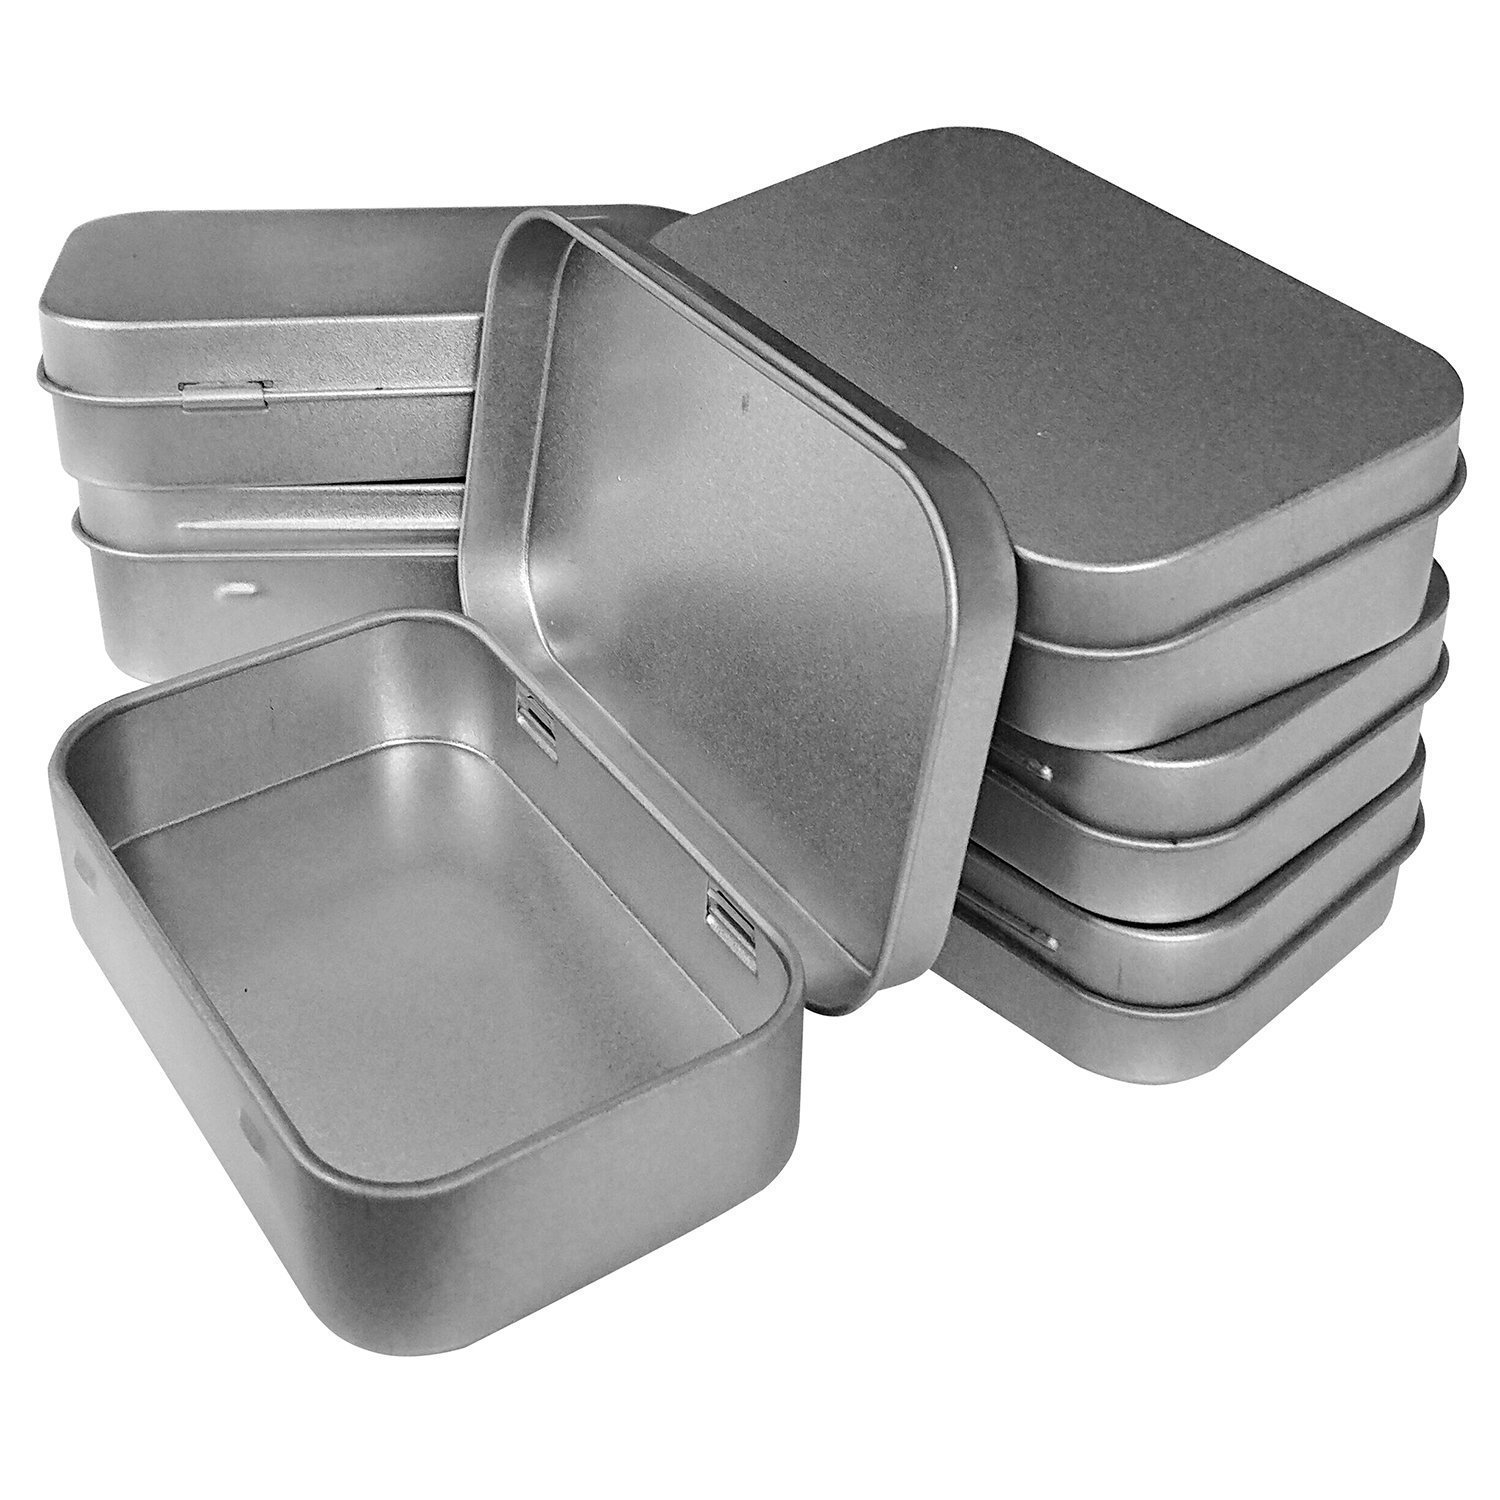 Hulless 3.75x2.45x0.8 Inch (12pcs) Metal Hinged Top Tin Box Containers,Mini Portable small storage containers Kit,Tin Box Containers,small tins with lids,craft containers,Tin empty boxes,Home Storage.